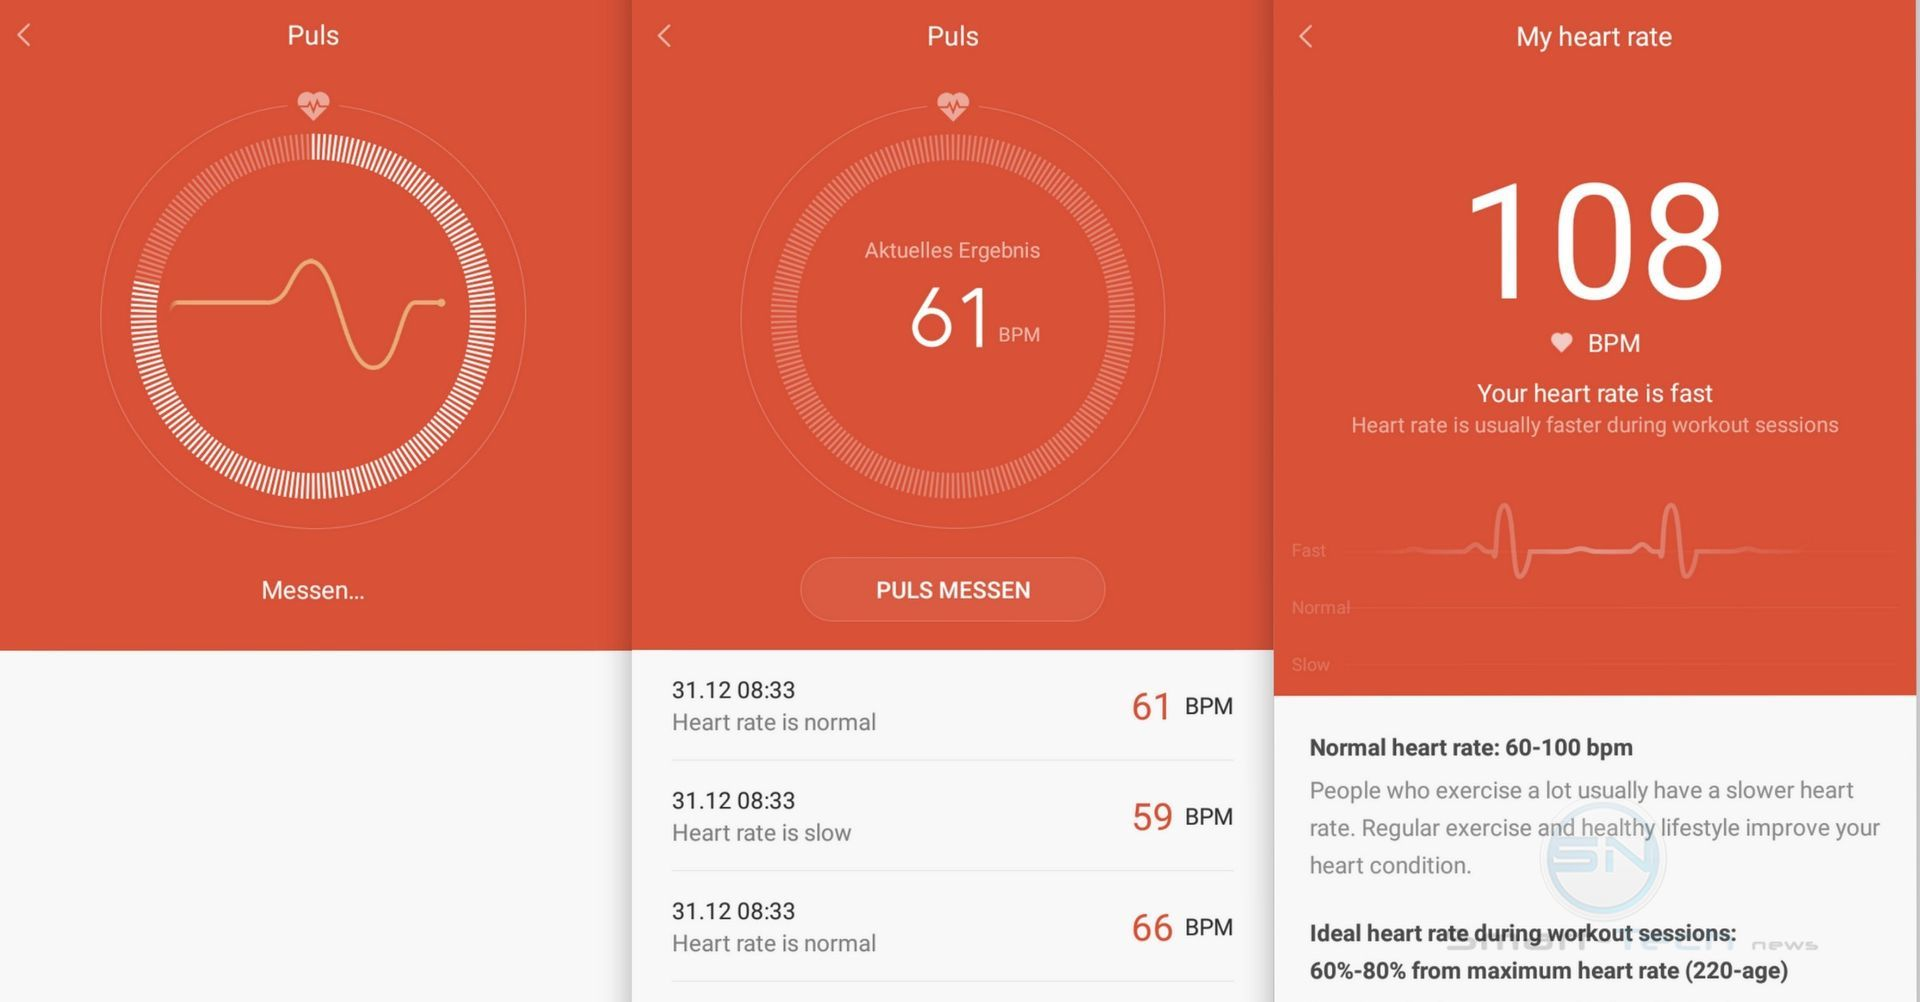 Puls Messung - Xiaomi MiBand 1s - SmartTechNews